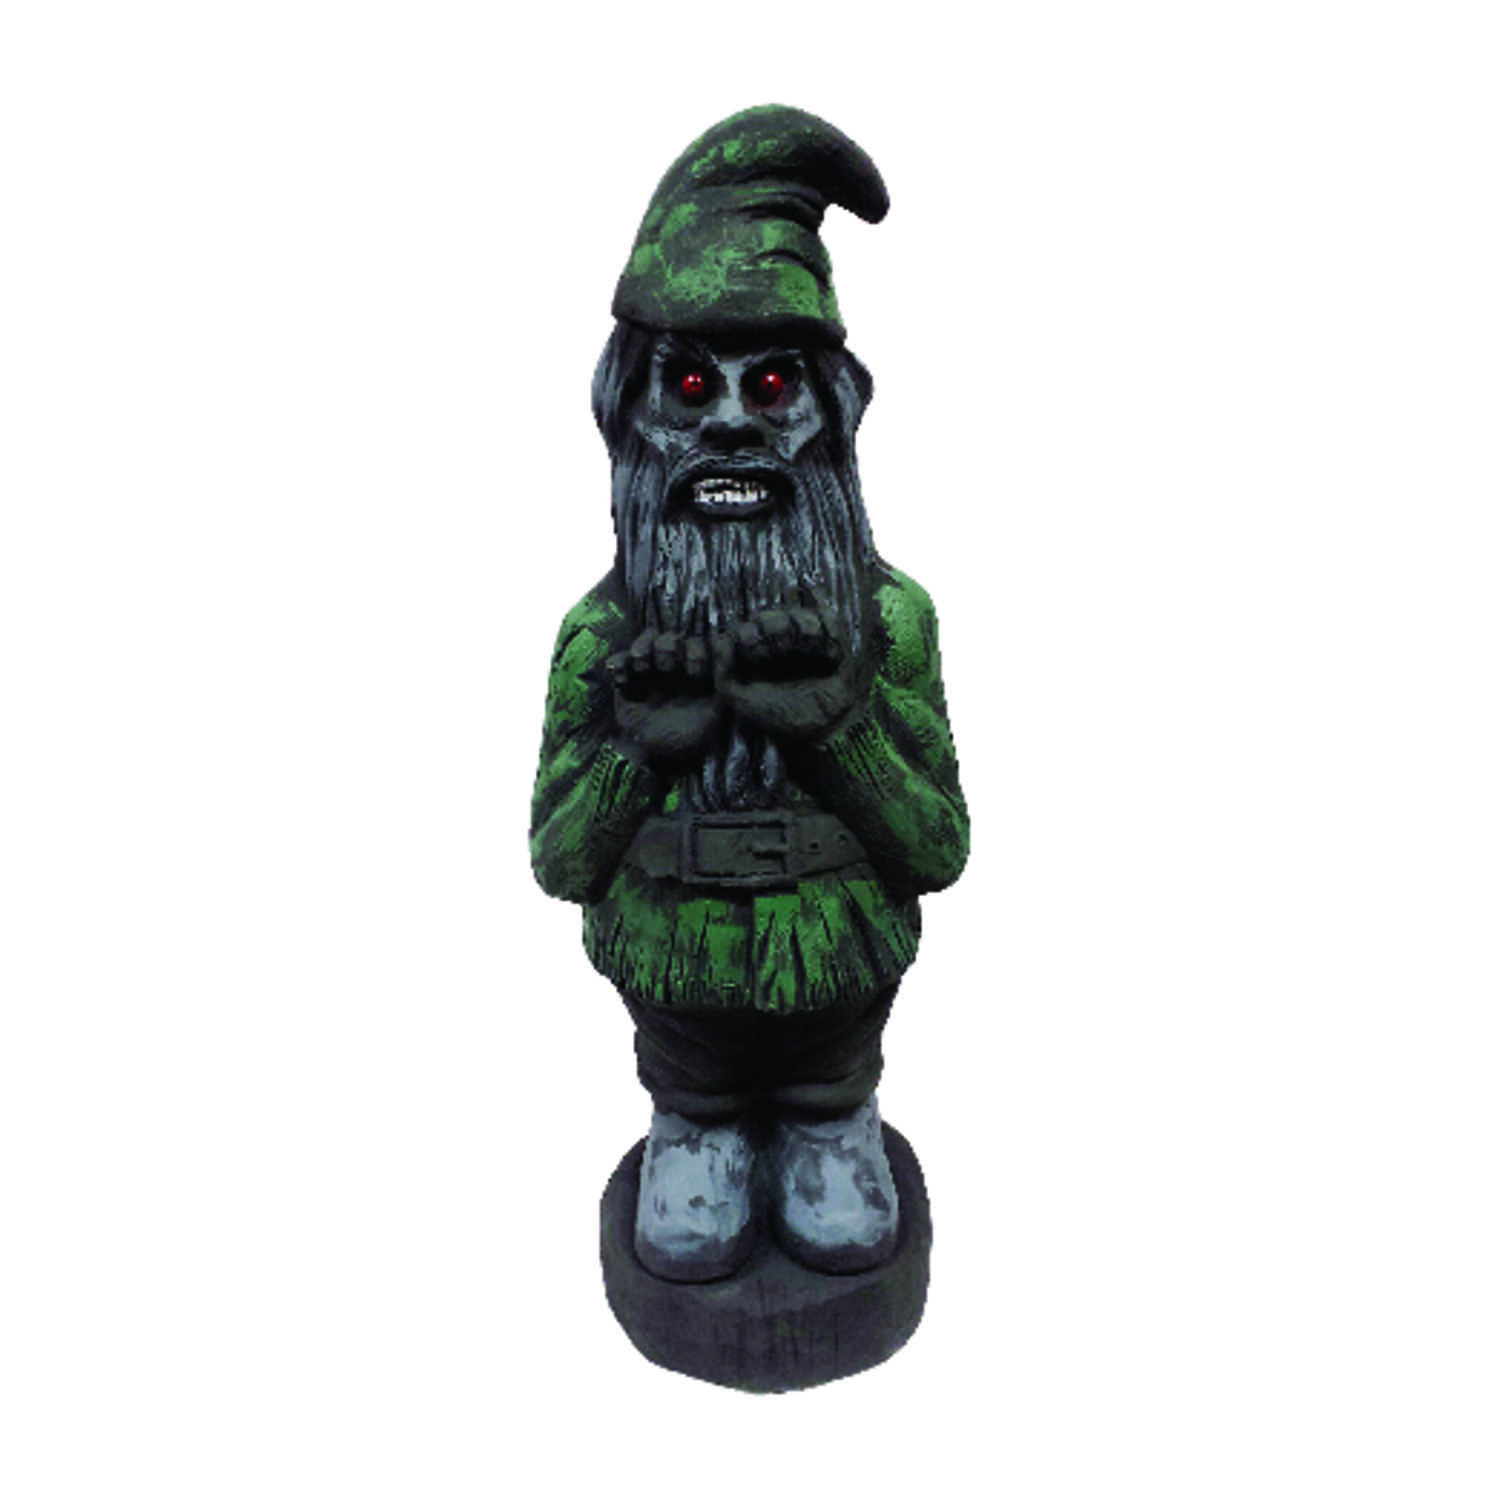 Union Products  Zombie Gnome  Halloween Decoration  26 in. H x 10 in. W x 26 in. L 1 each